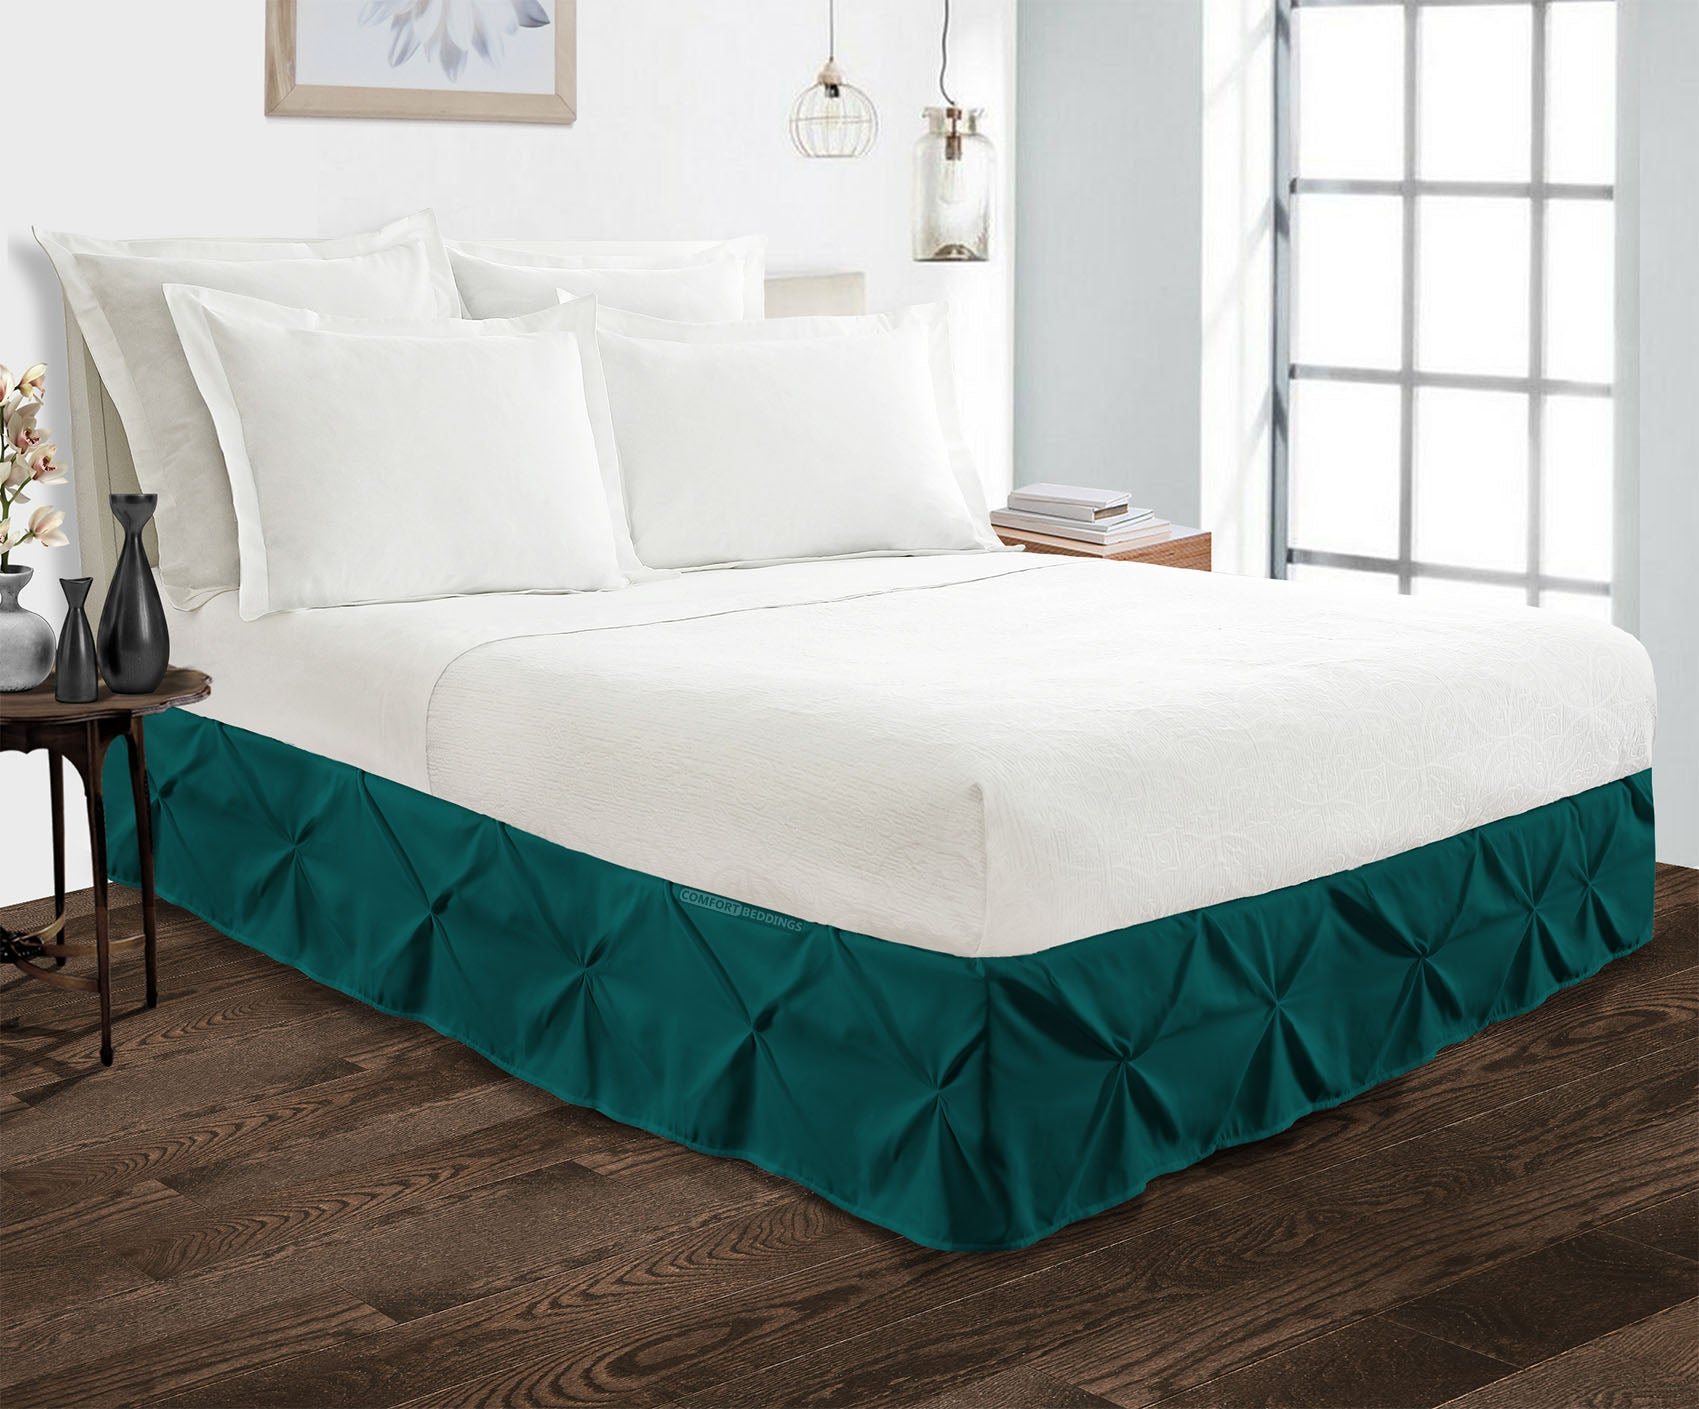 Elegant Teal pinch pleated bed skirt